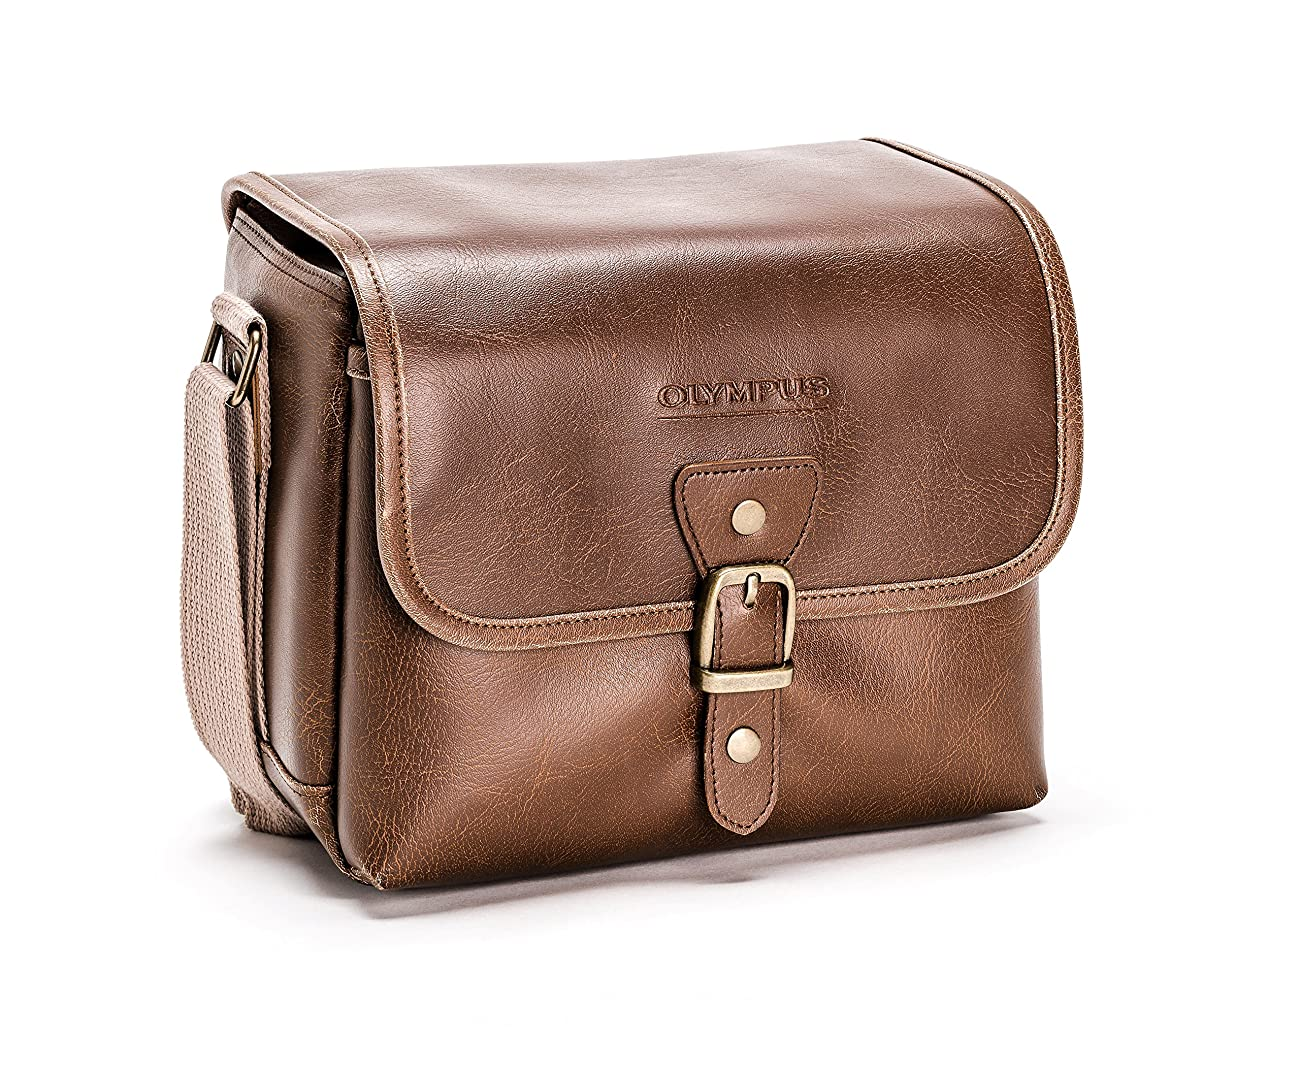 Olympus Tracker Classic Design Vintage Camera Bag (Brown) 0